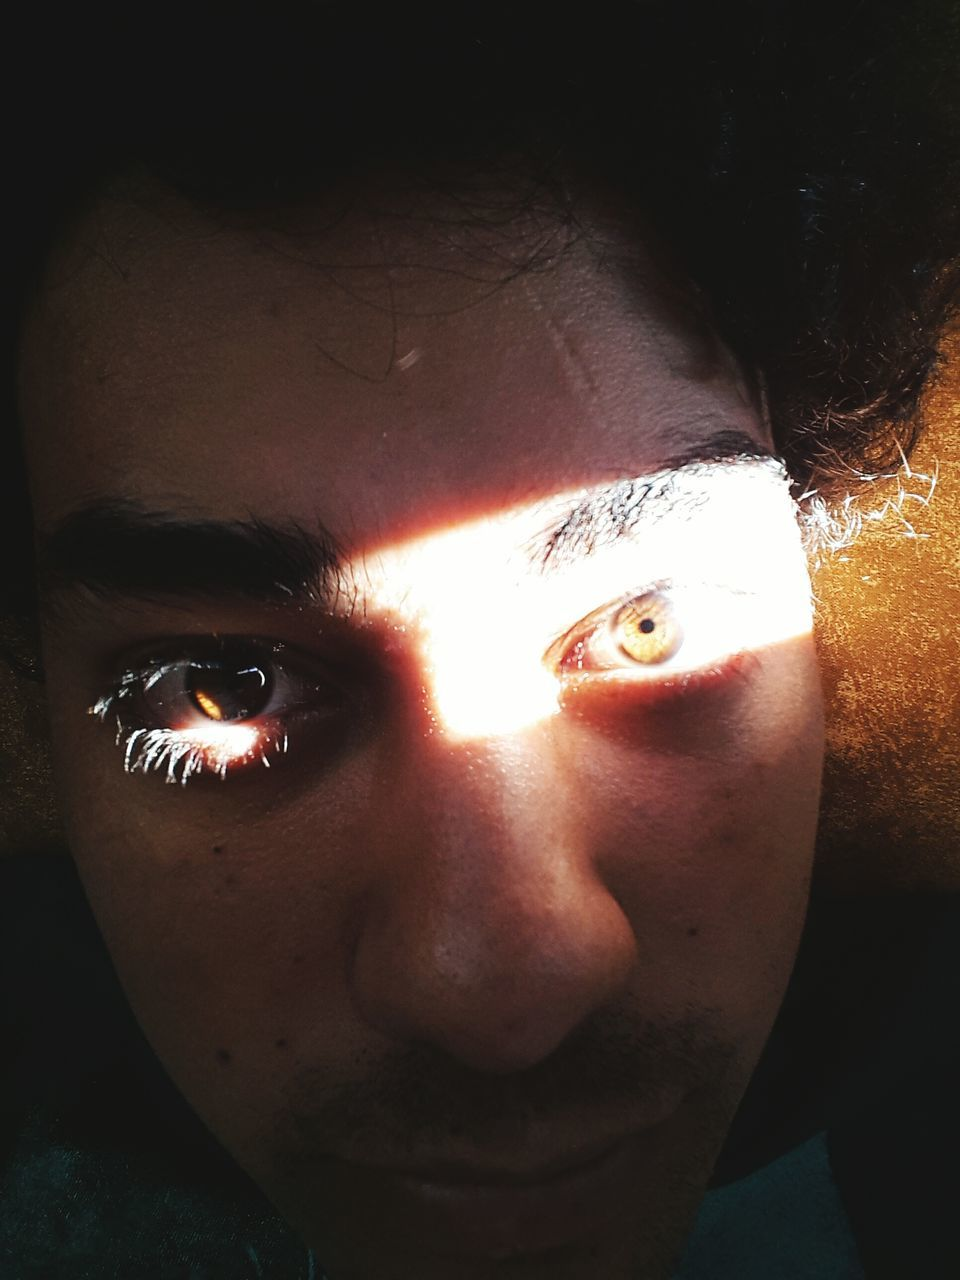 real people, one person, close-up, looking at camera, leisure activity, young adult, human face, portrait, human eye, men, indoors, day, eyeball, people